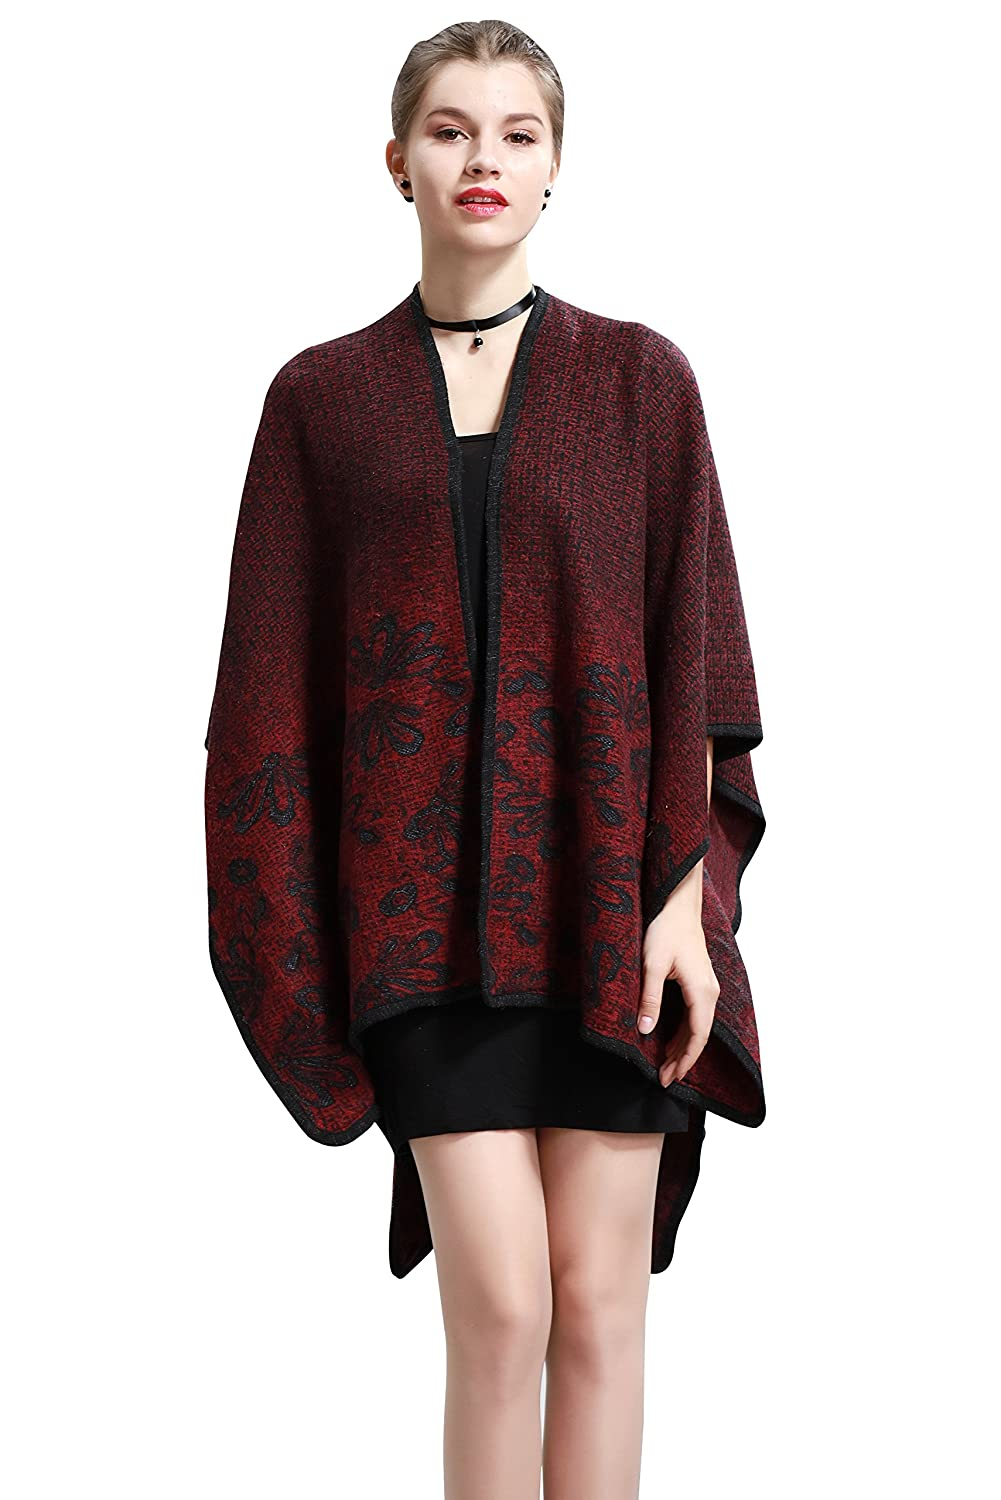 Wincolor Women's Winter Knitted Cashmere Puncho Shawl Capes Cardigans Pashmina Wraps